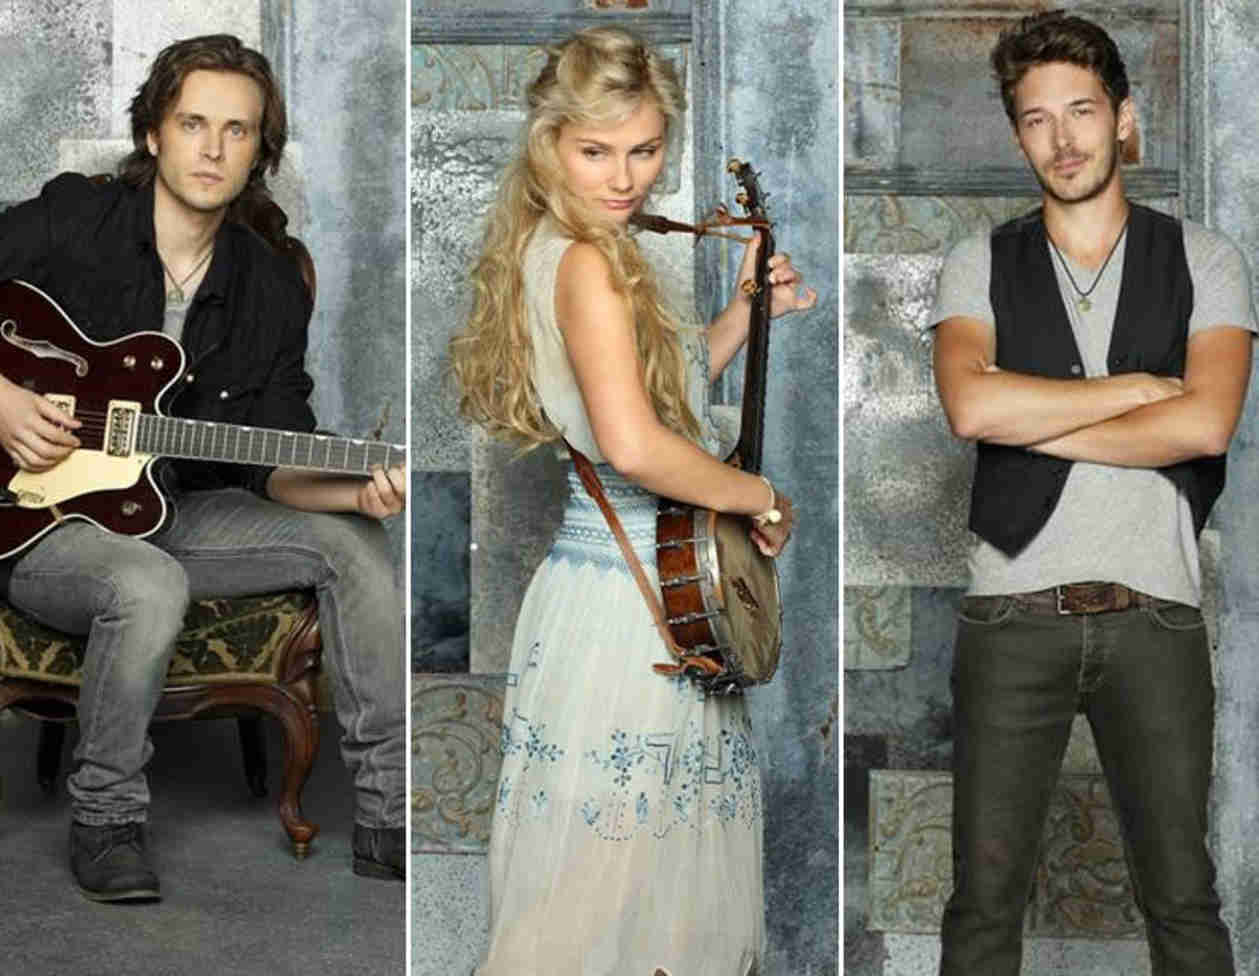 Who Should Scarlett O'Connor Be With on Nashville?